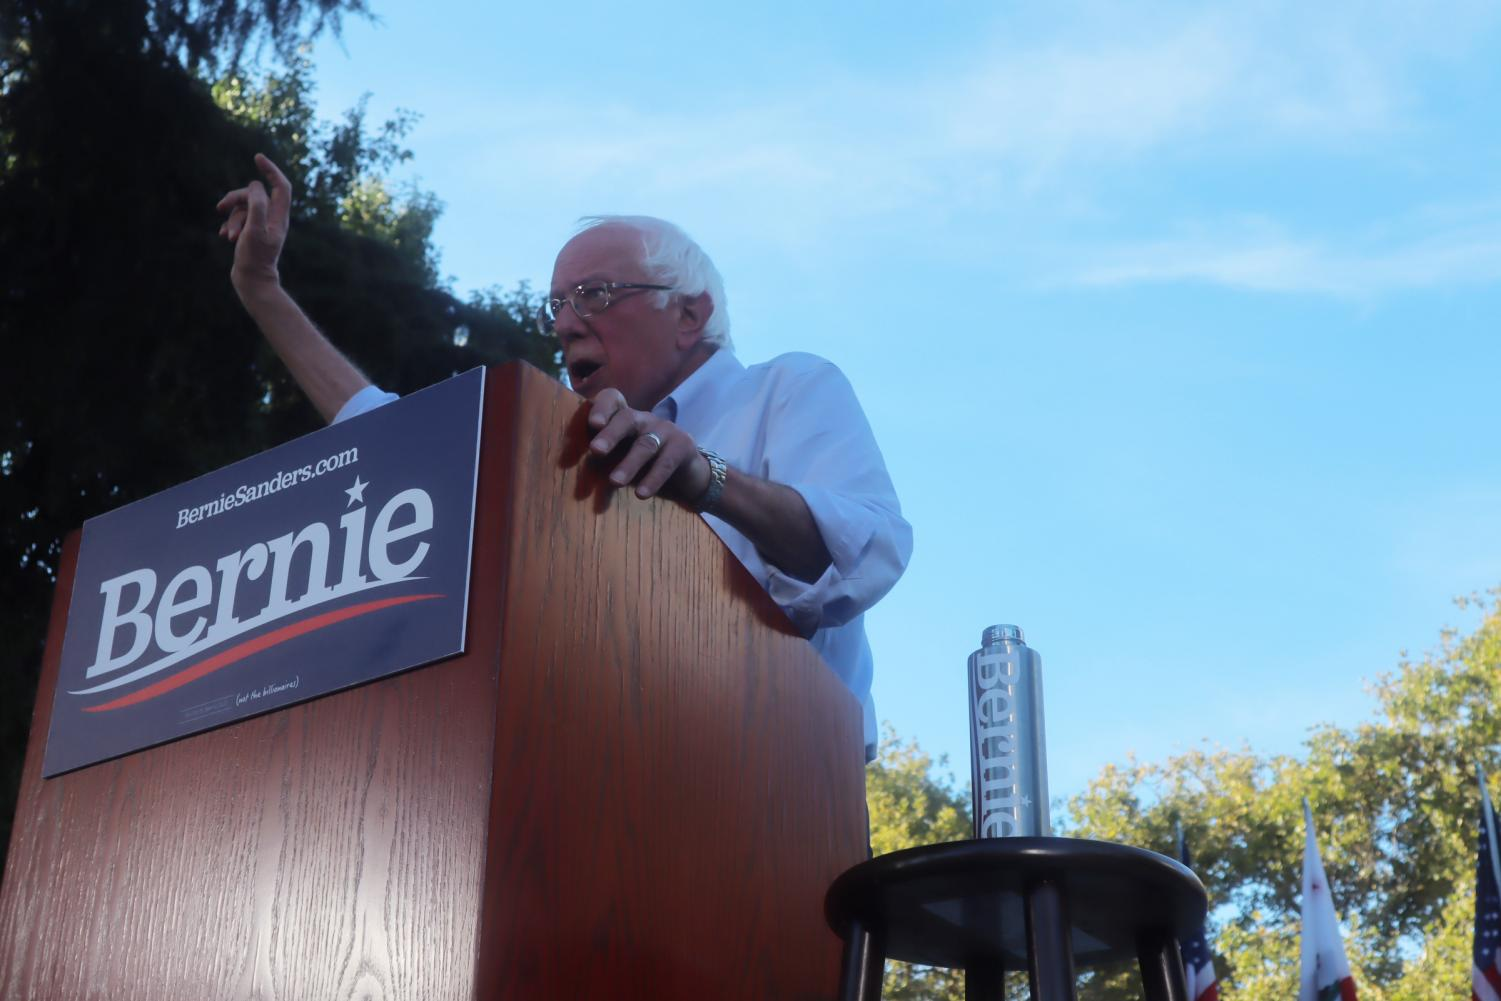 Presidential candidate Bernie Sanders addresses the crowd at Cesar Chavez Plaza on Thursday, Aug. 22, 2019. Sanders speech focused on his platform of climate change, Medicare for All, and student debt.